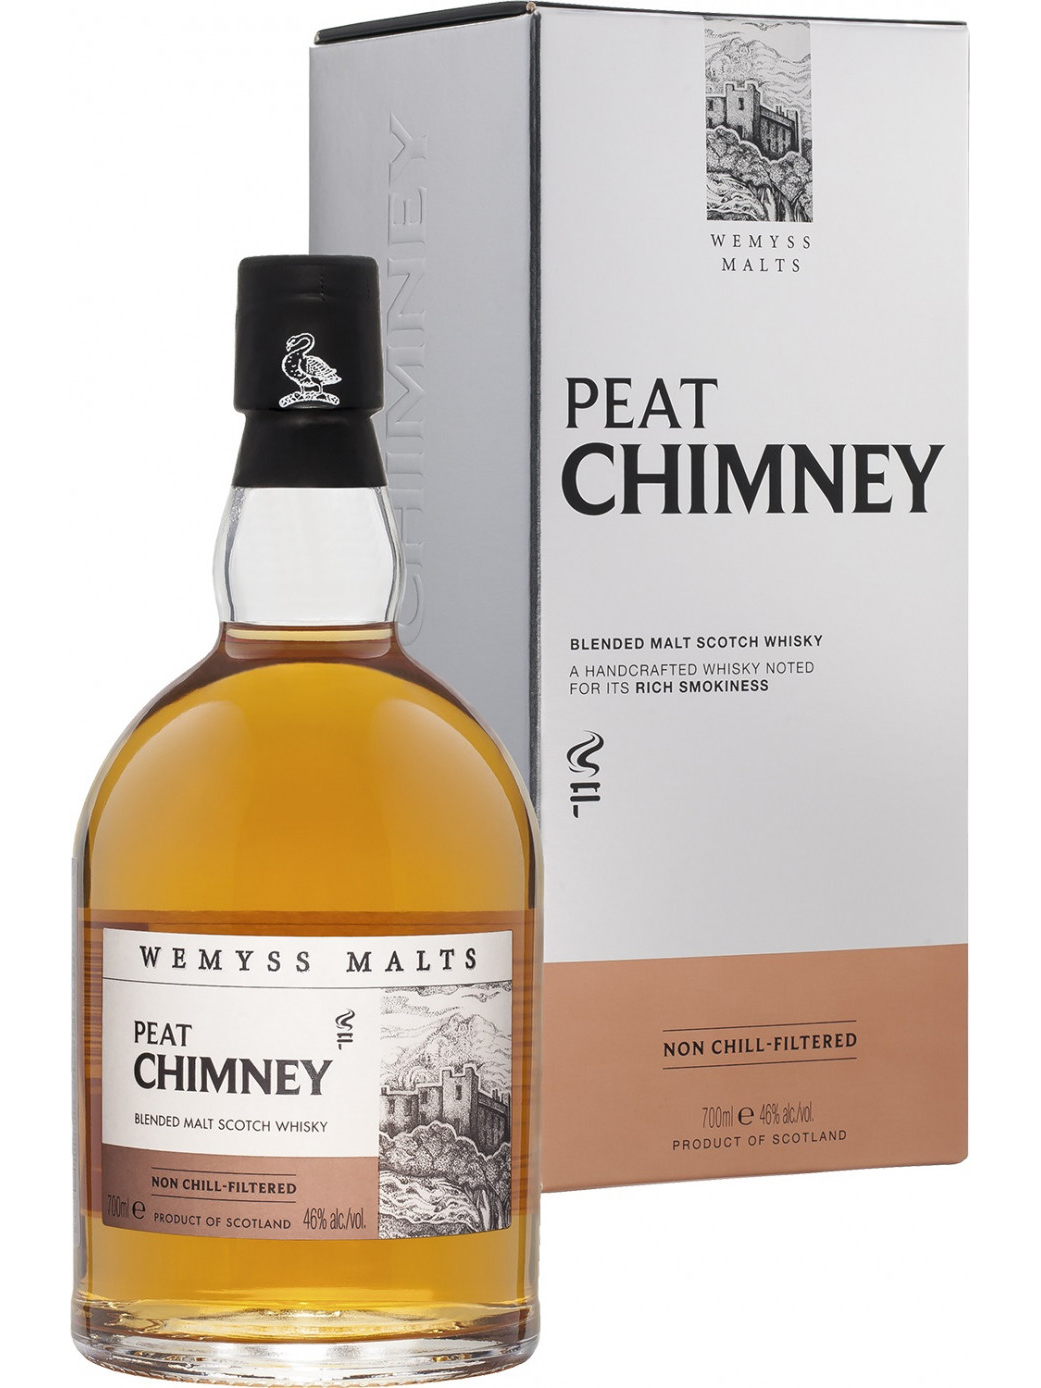 WEMYSS MALTS PEAT CHIMNEY blended malt